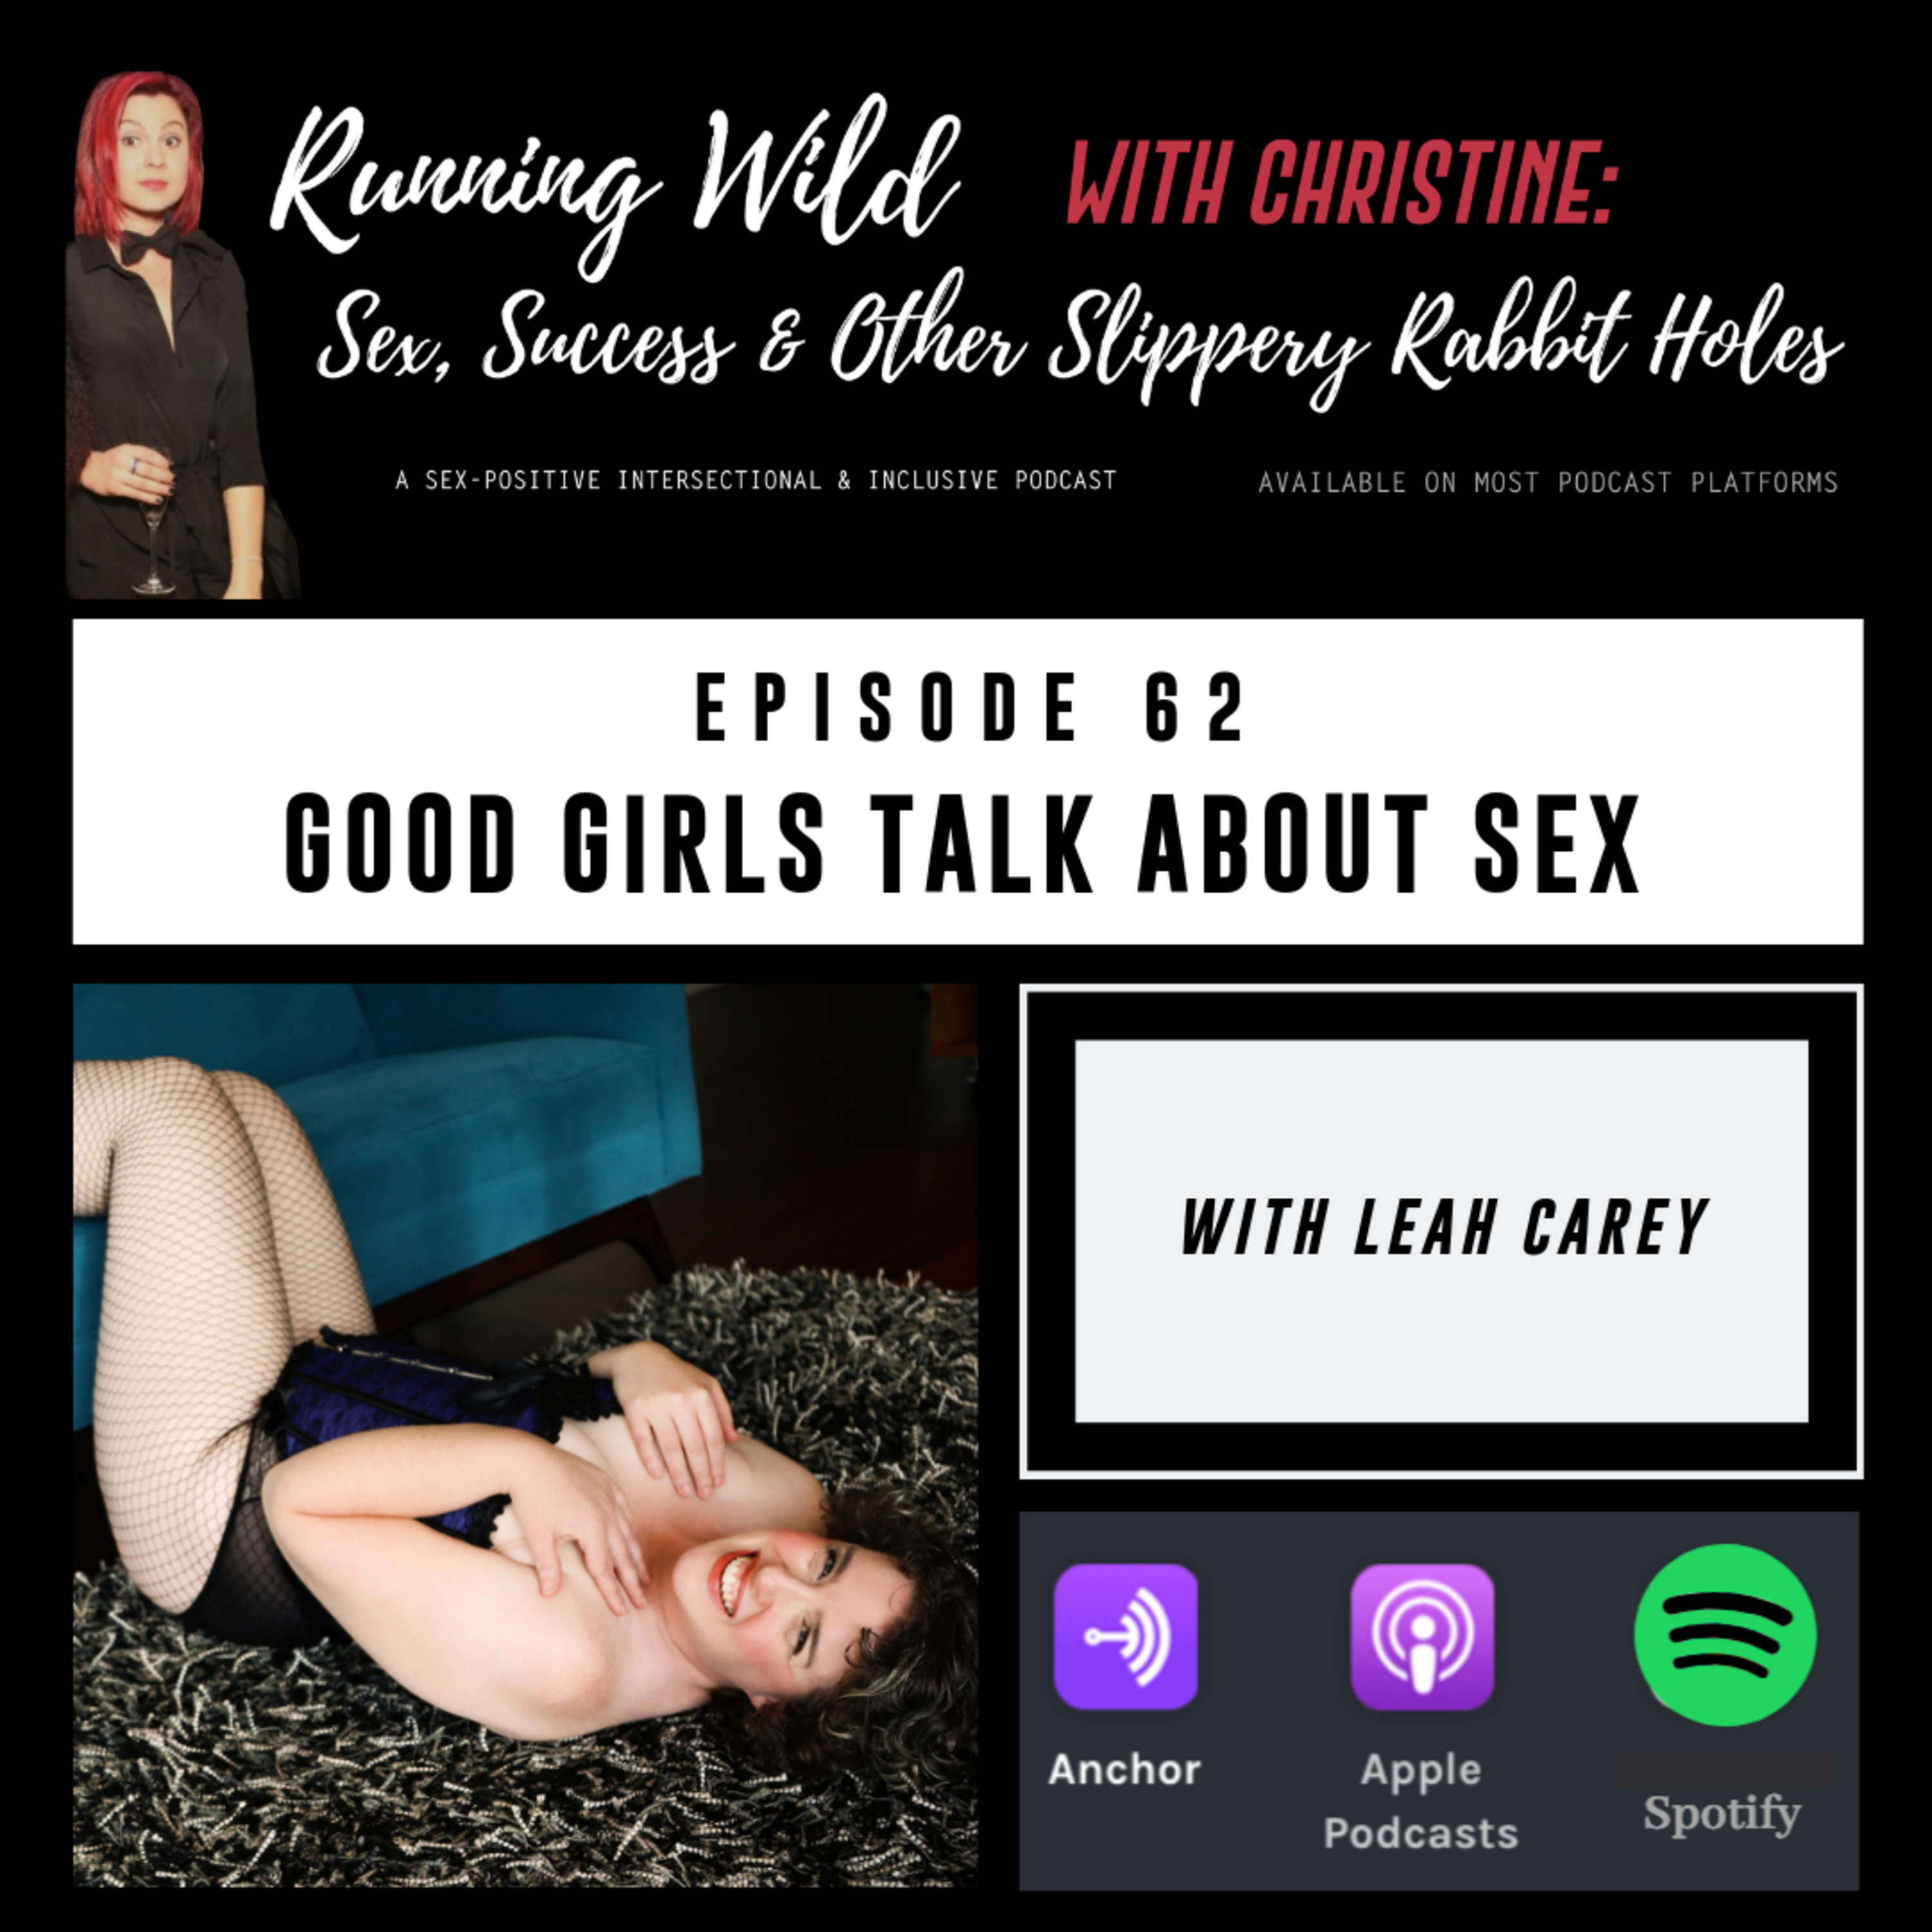 Ep 62: Good Girls Talk About Sex, with Leah Carey